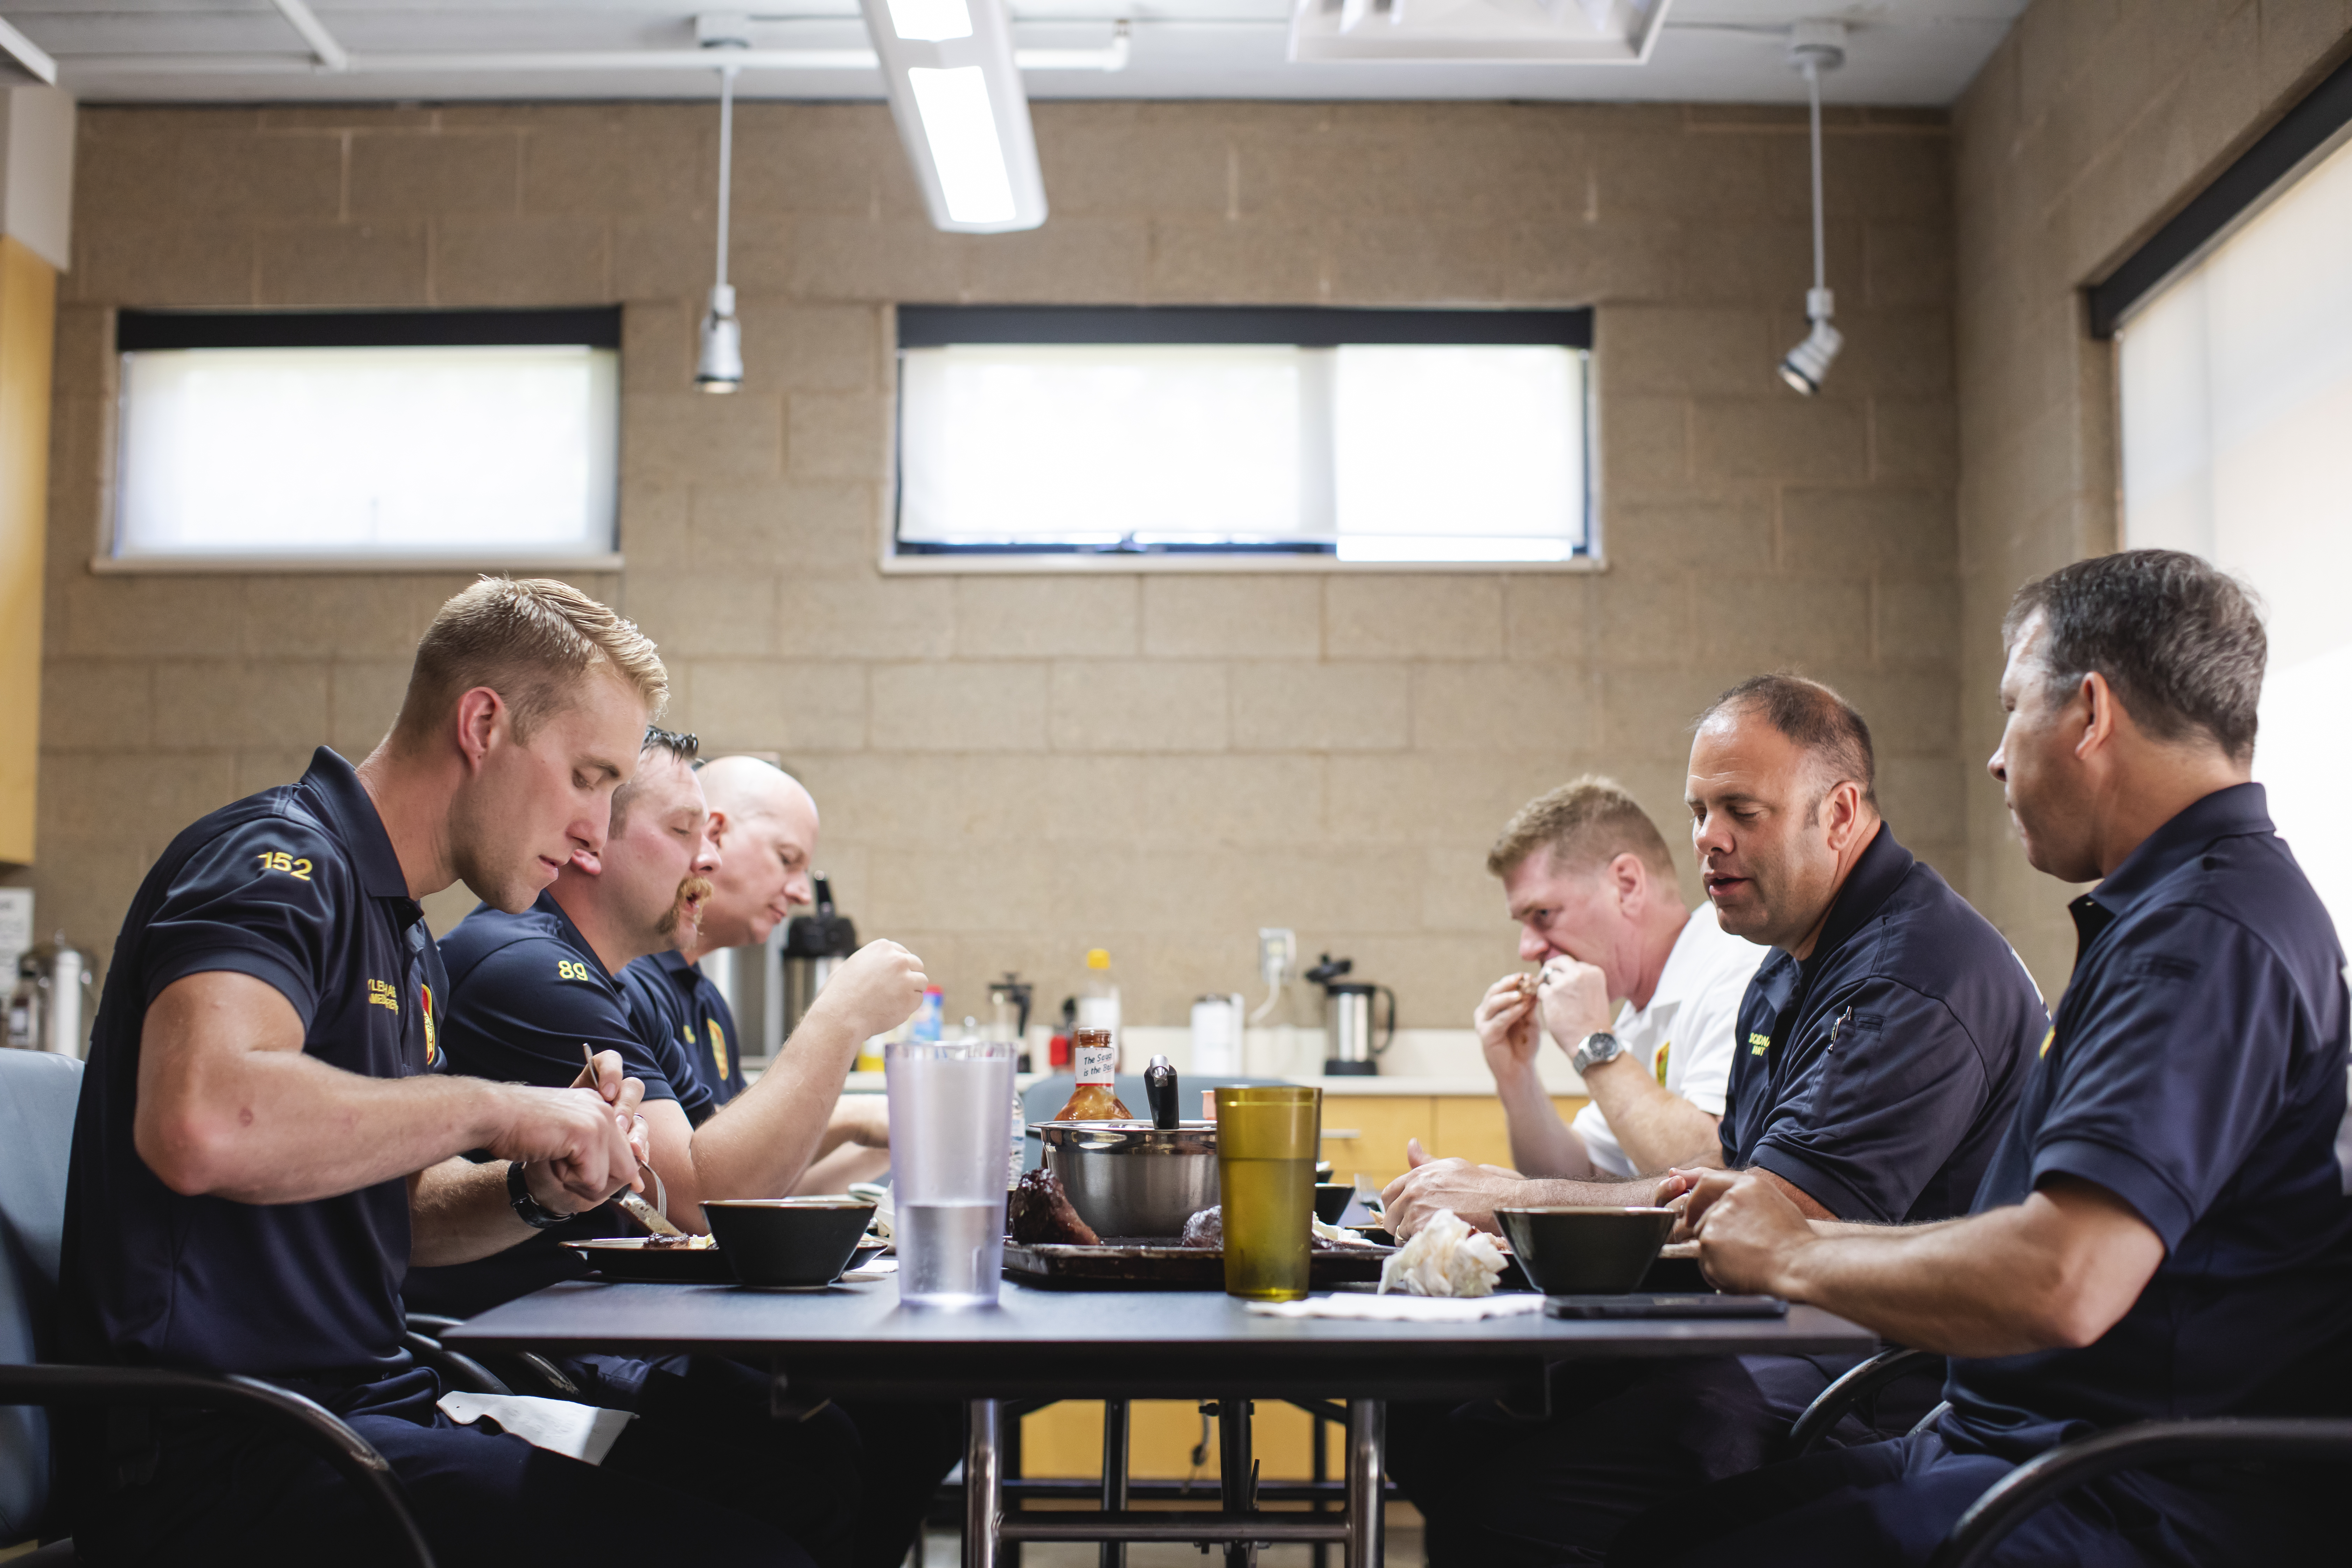 The crew at Edina Fire Station 1 sitting down for a meal // Photo by Garrett Born